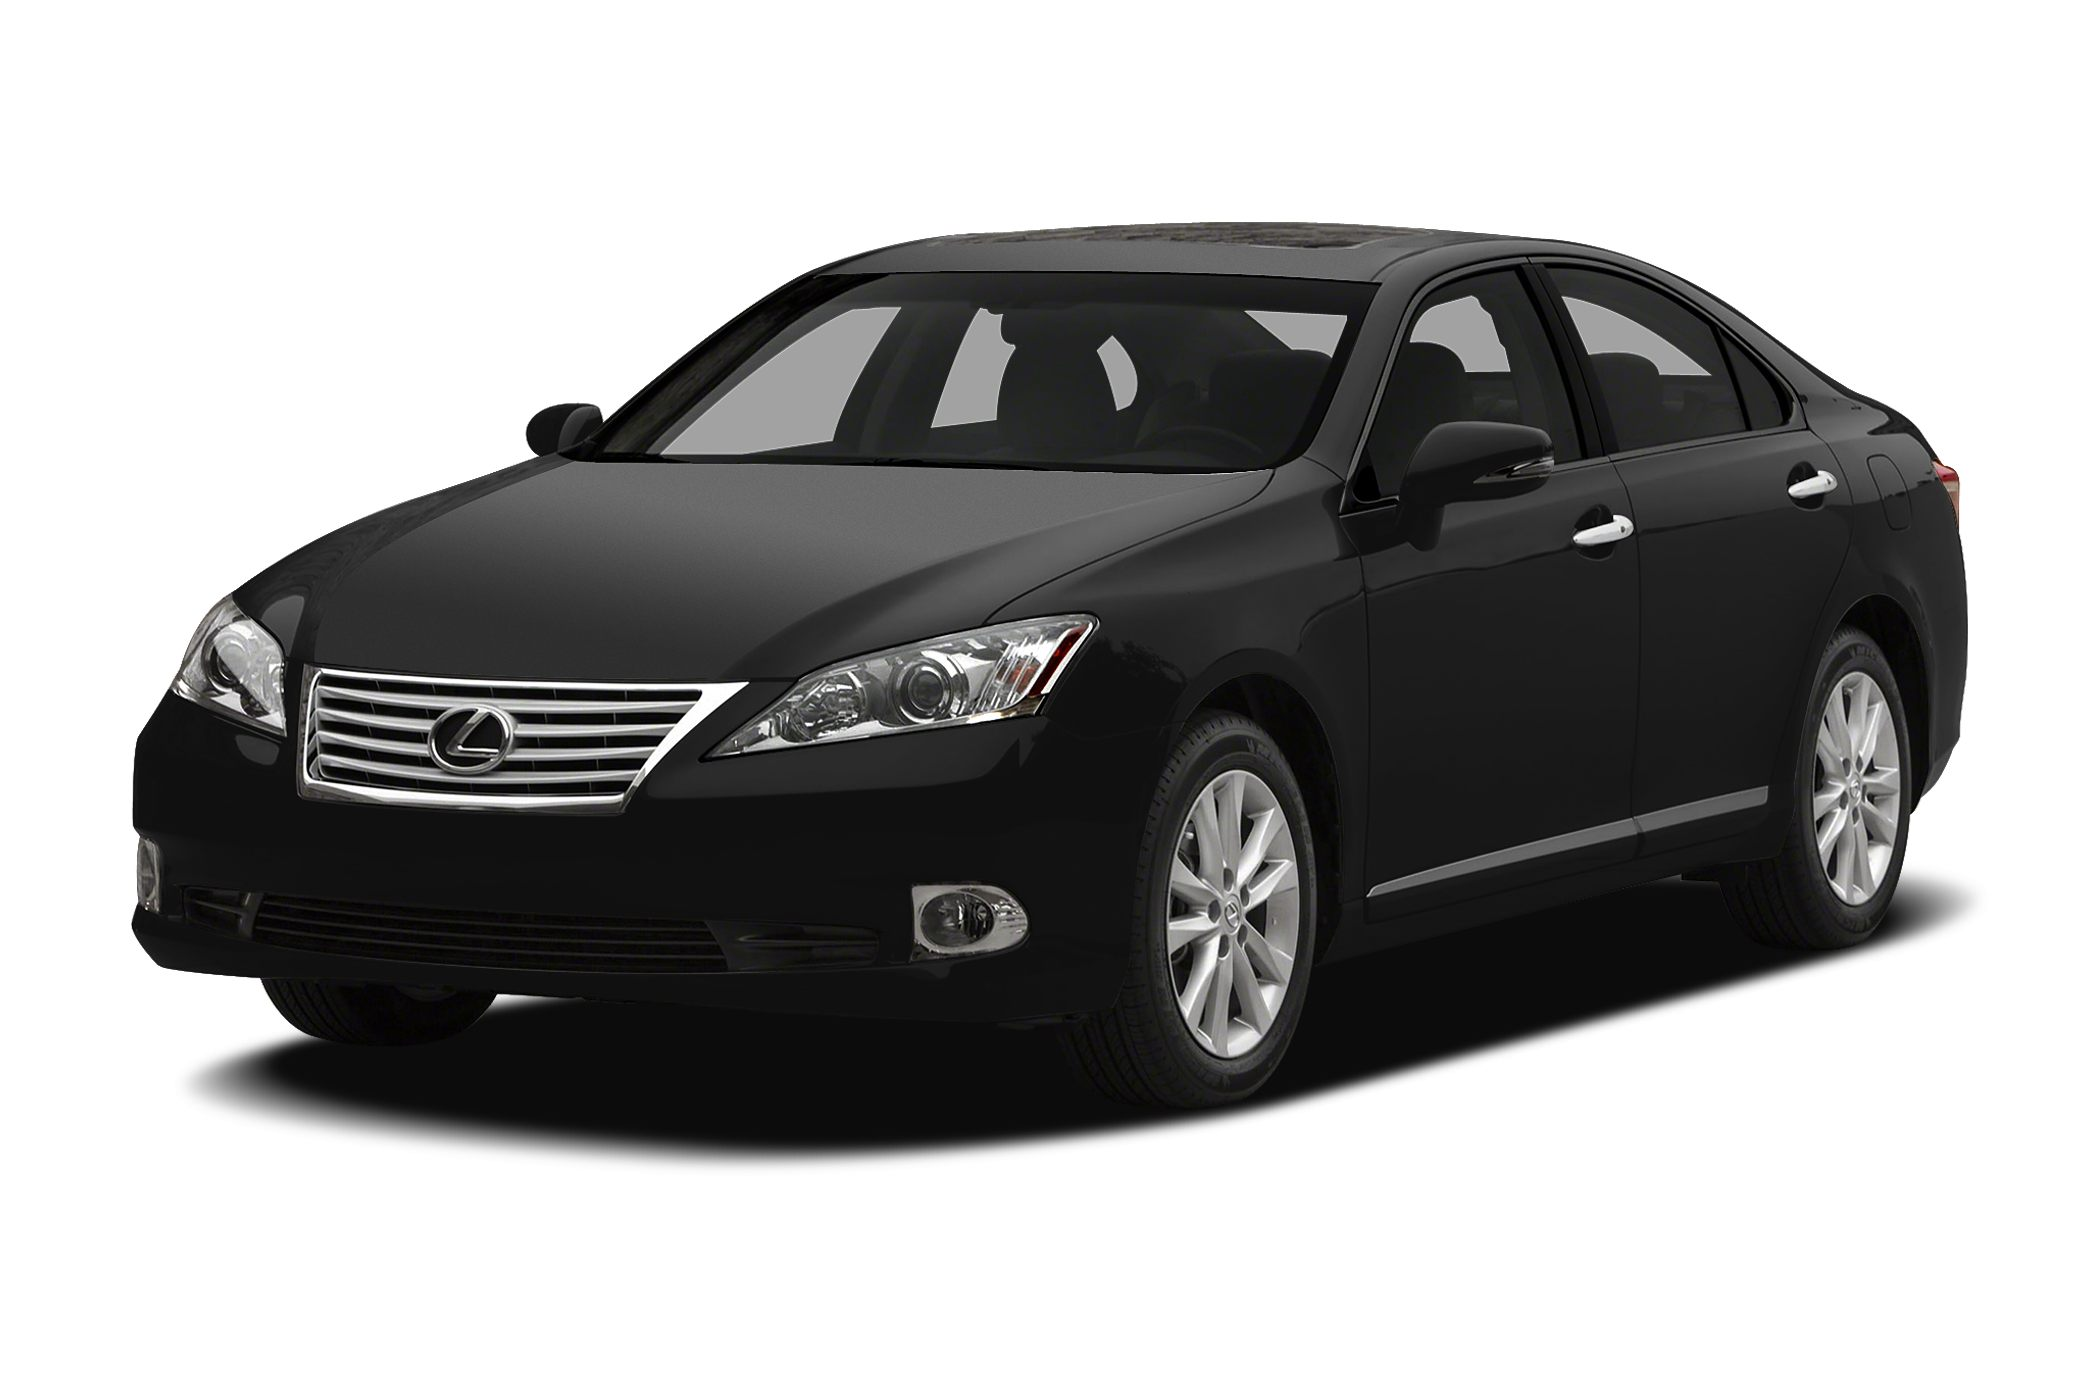 2010 Lexus ES 350 Sedan for sale in Long Island City for $17,990 with 37,457 miles